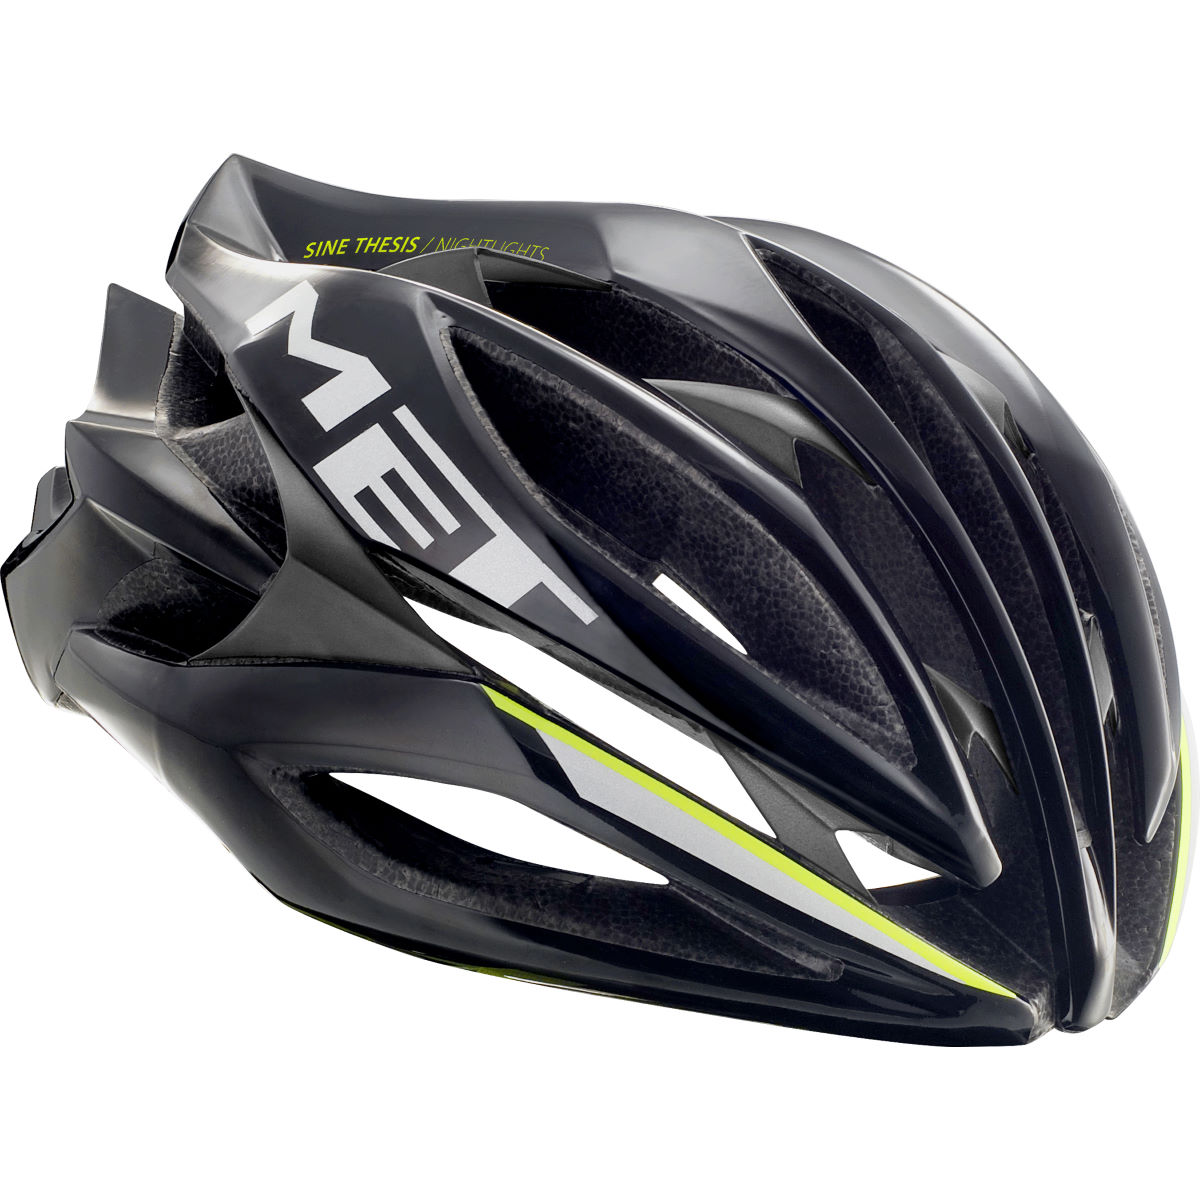 Casco de carretera MET Sine Thesis (Nightlights - ICE LITE)